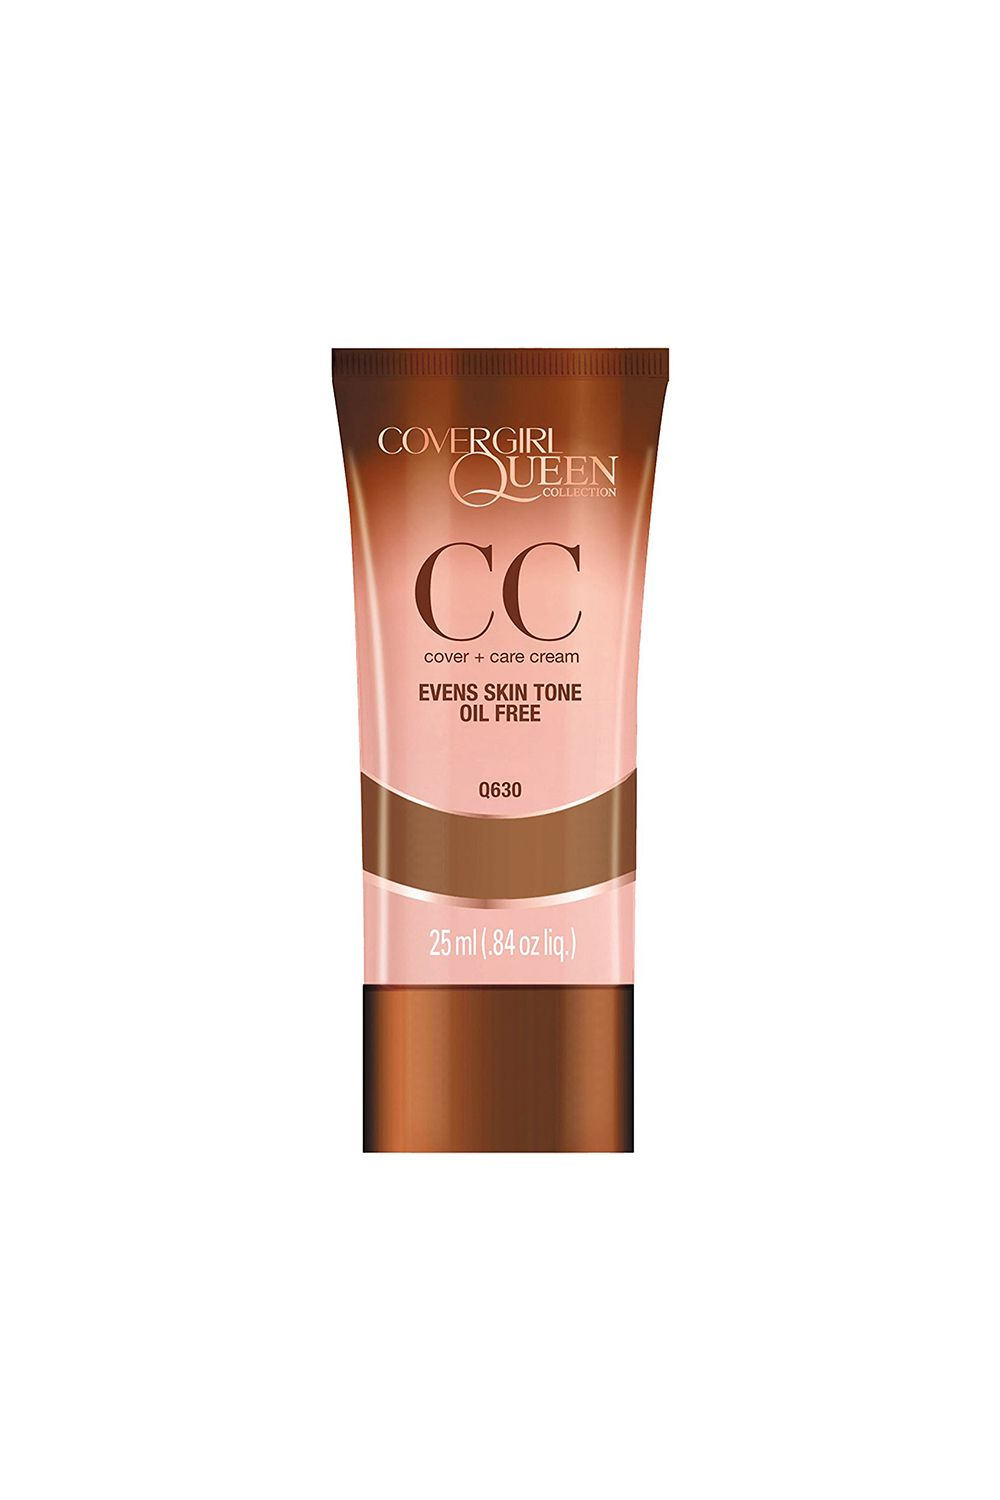 "<p>This lightweight CC cream covers like a foundation, but feels like a tinted moisturizer, and it won't settle into fine lines by the end of the day.  </p><p><i data-redactor-tag=""i"">CoverGirl Queen Collection CC Cream, $8</i></p><p><strong data-redactor-tag=""strong"">BUY IT: <a href=""CoverGirl%20Queen%20Collection%20CC%20Cream"">walmart.com</a>. </strong></p>"